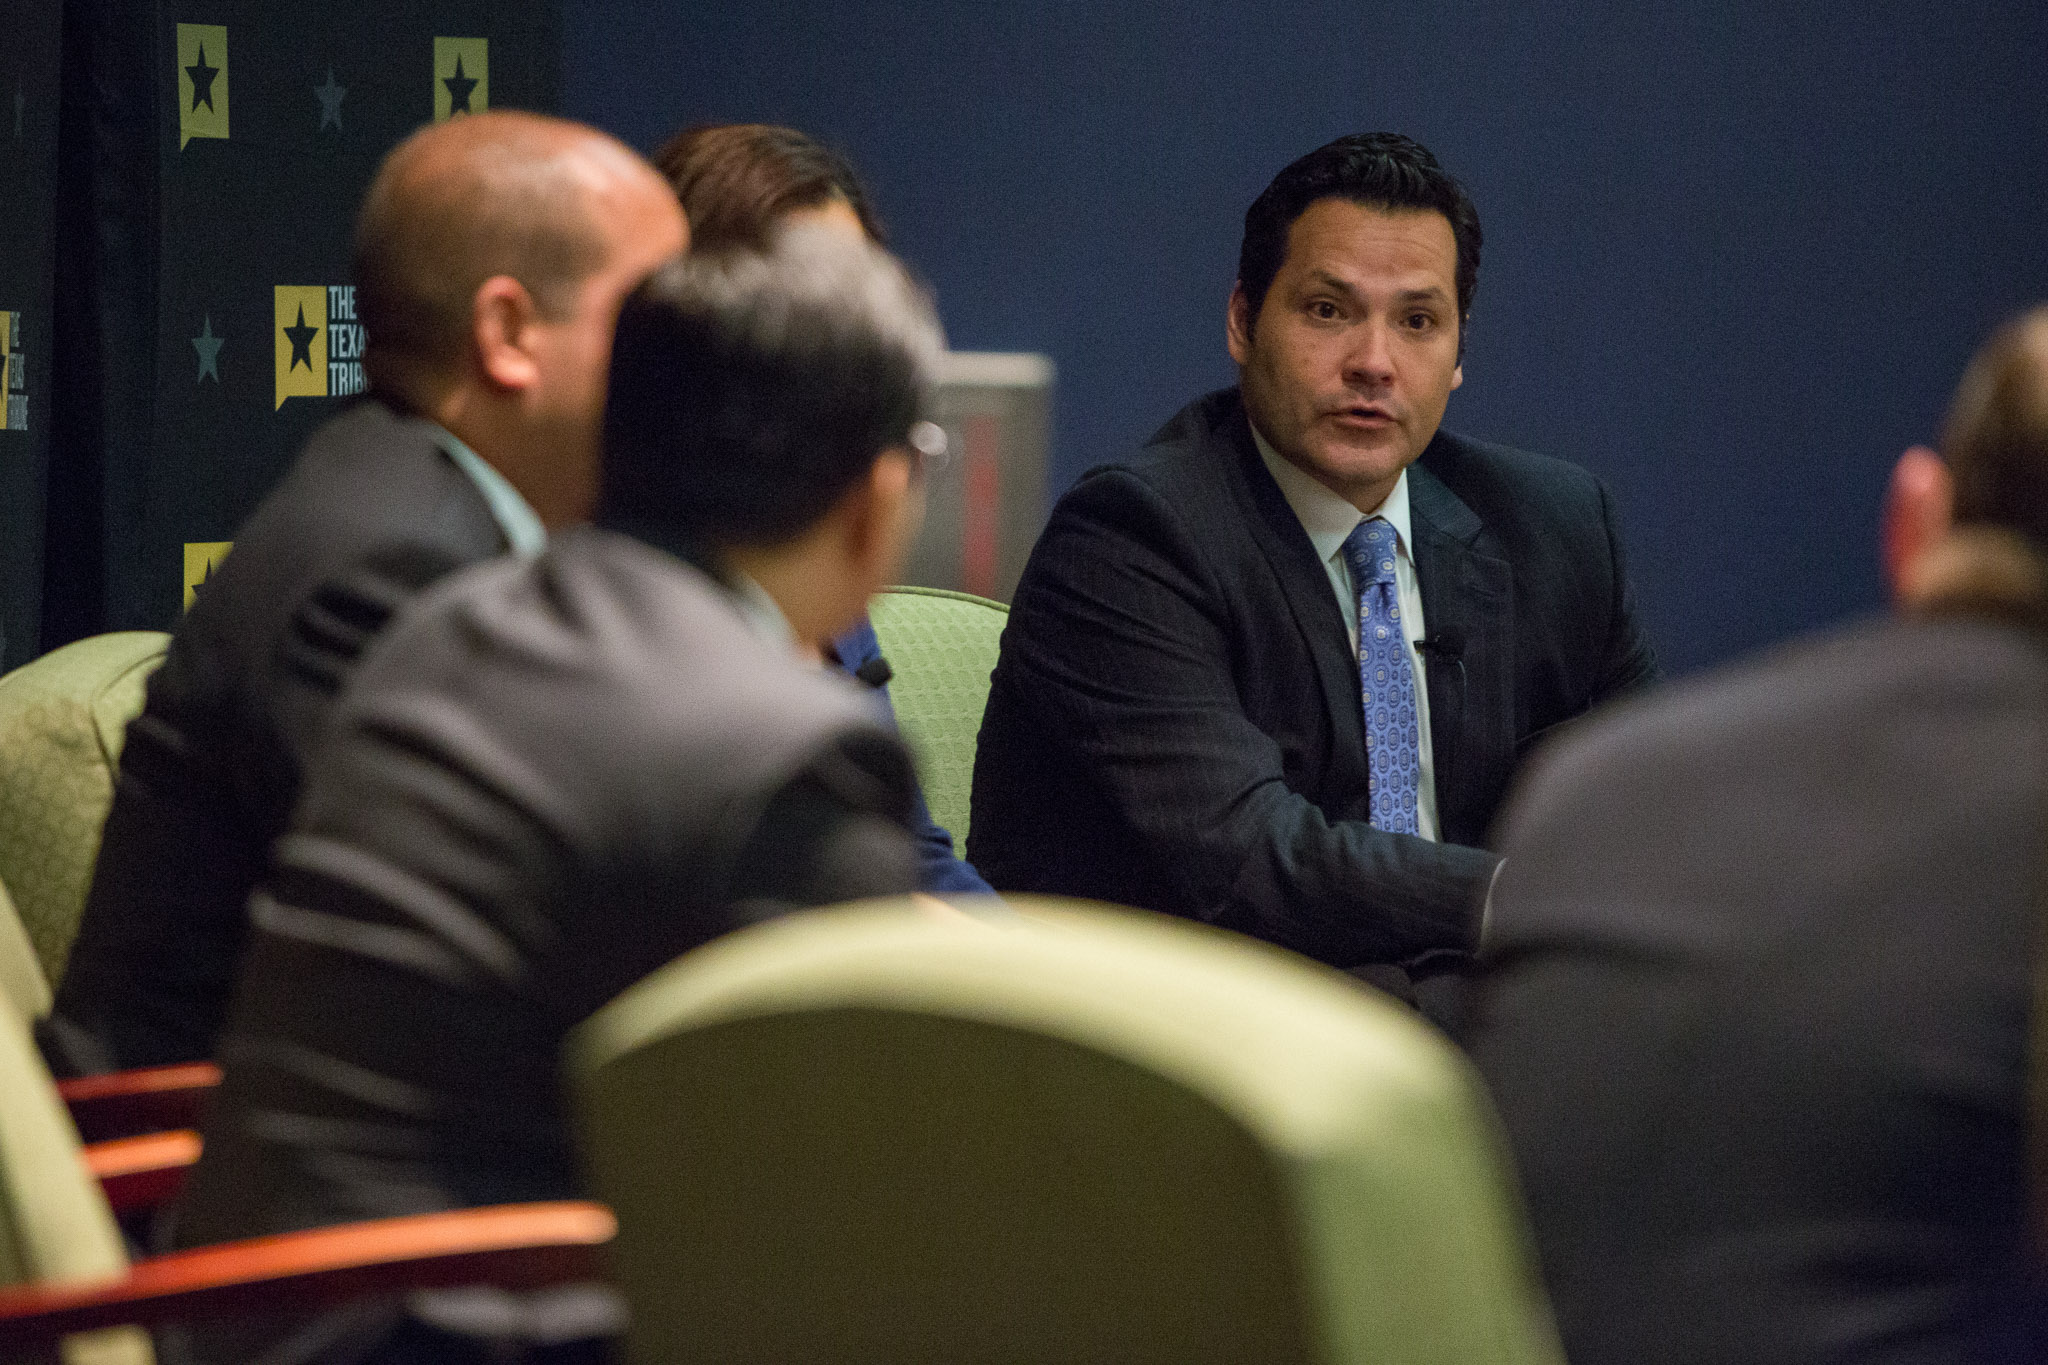 State Rep. Justin Rodriguez (D125) responds. Photo by Scott Ball.